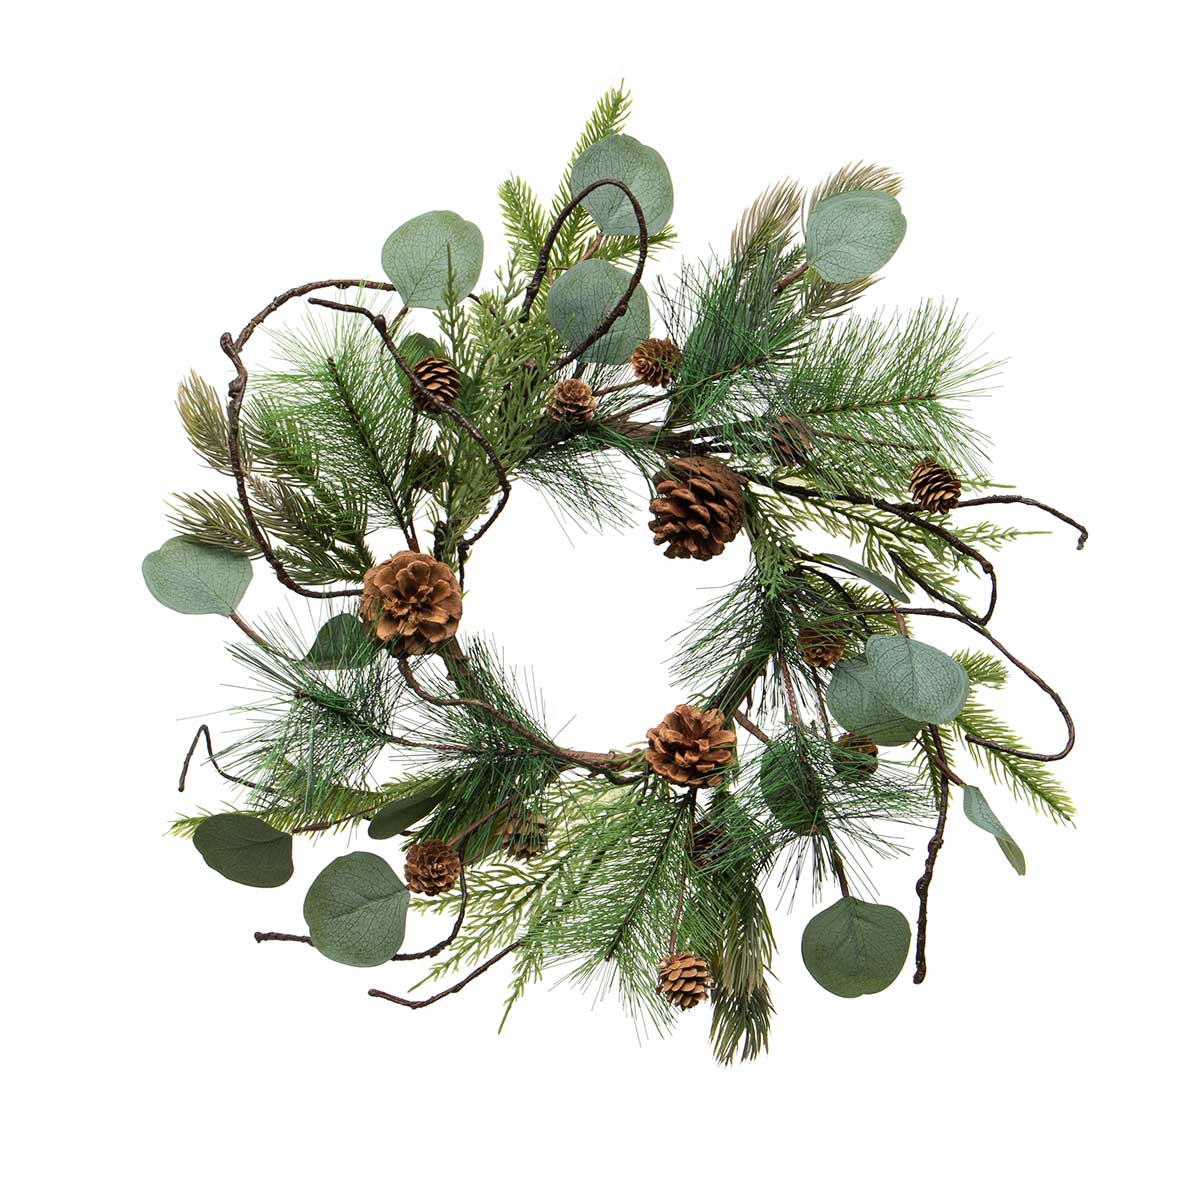 FRESH CUT PINE MINI WREATH/CANDLE RING WITH EUCALYPTUS